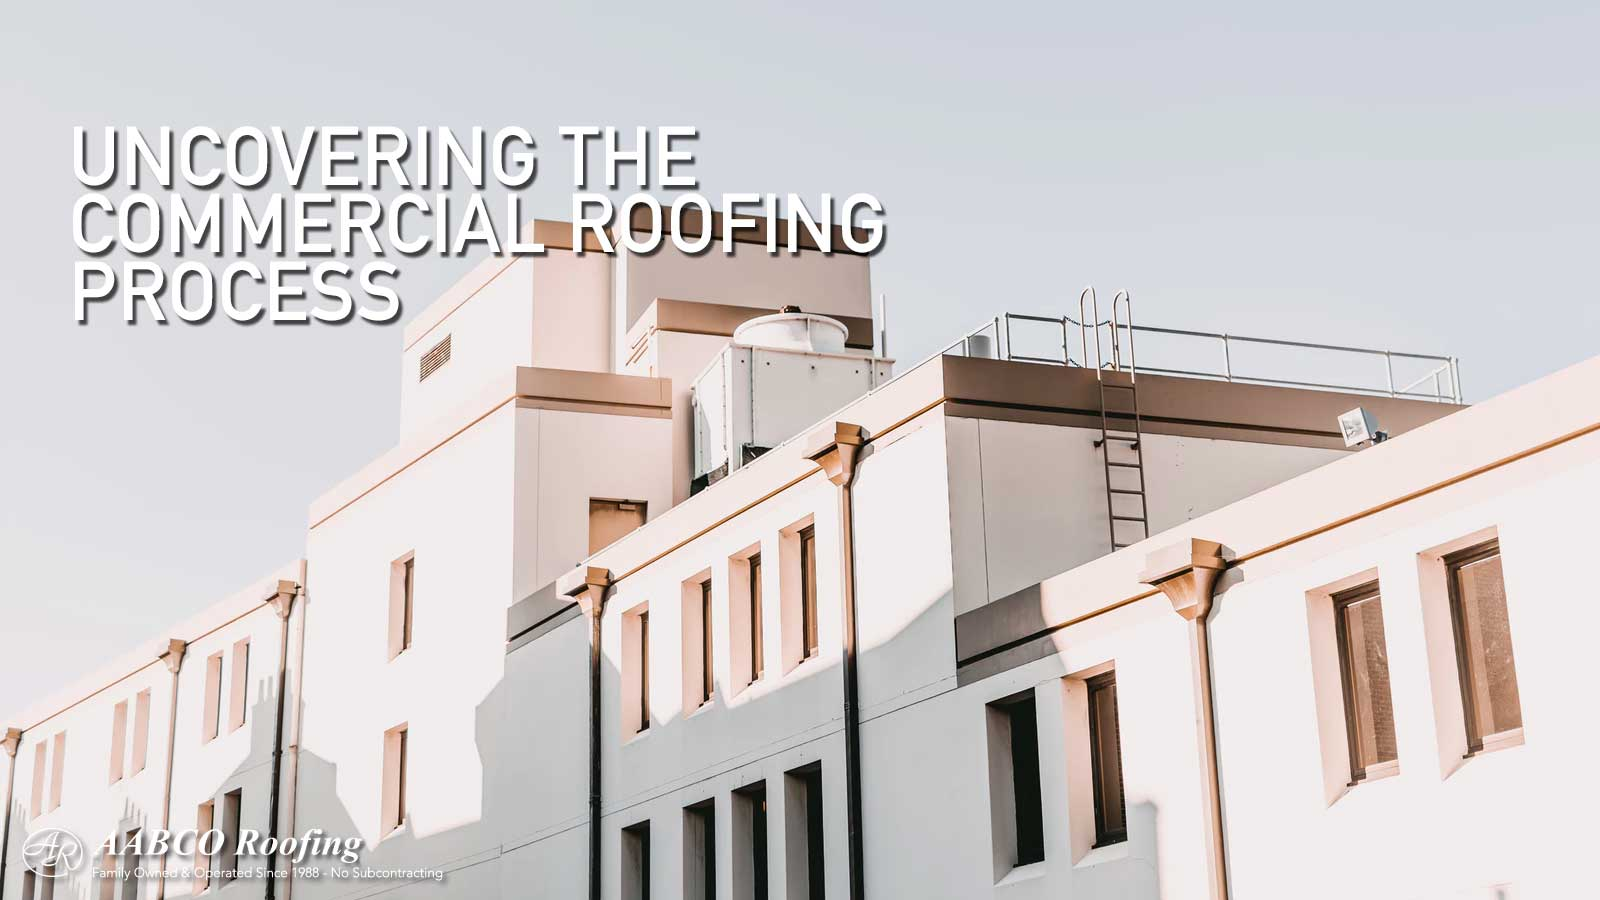 Uncovering the Commercial Roofing Process